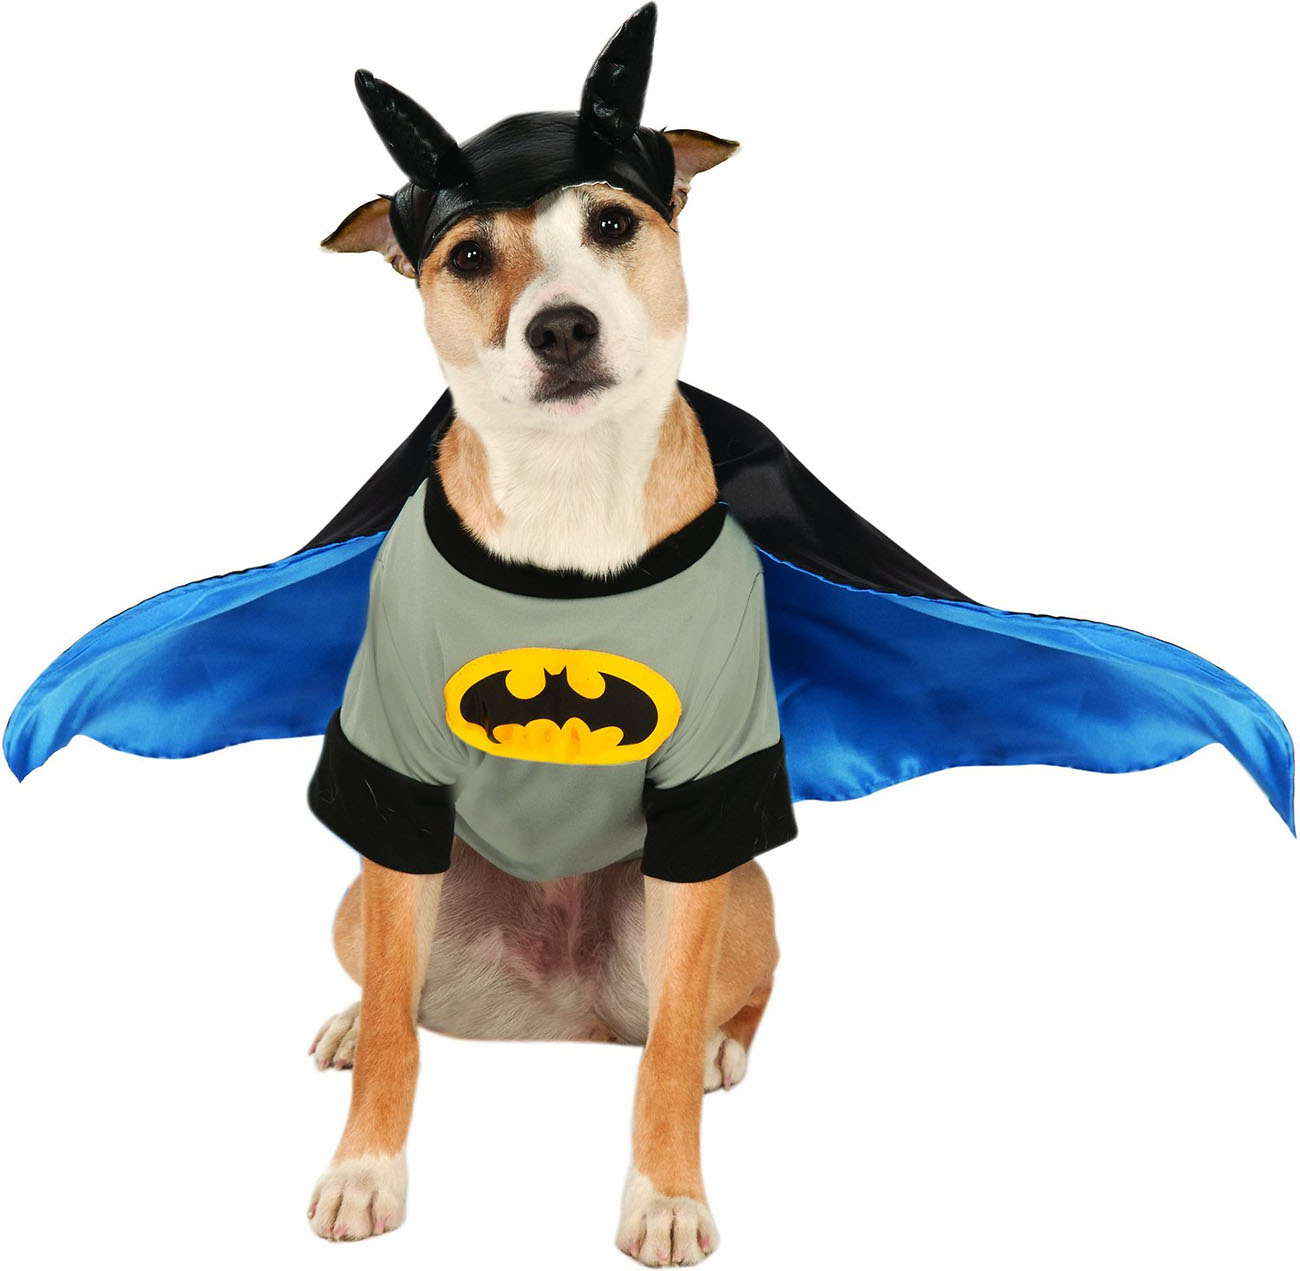 Batman Halloween costume for dogs and cats